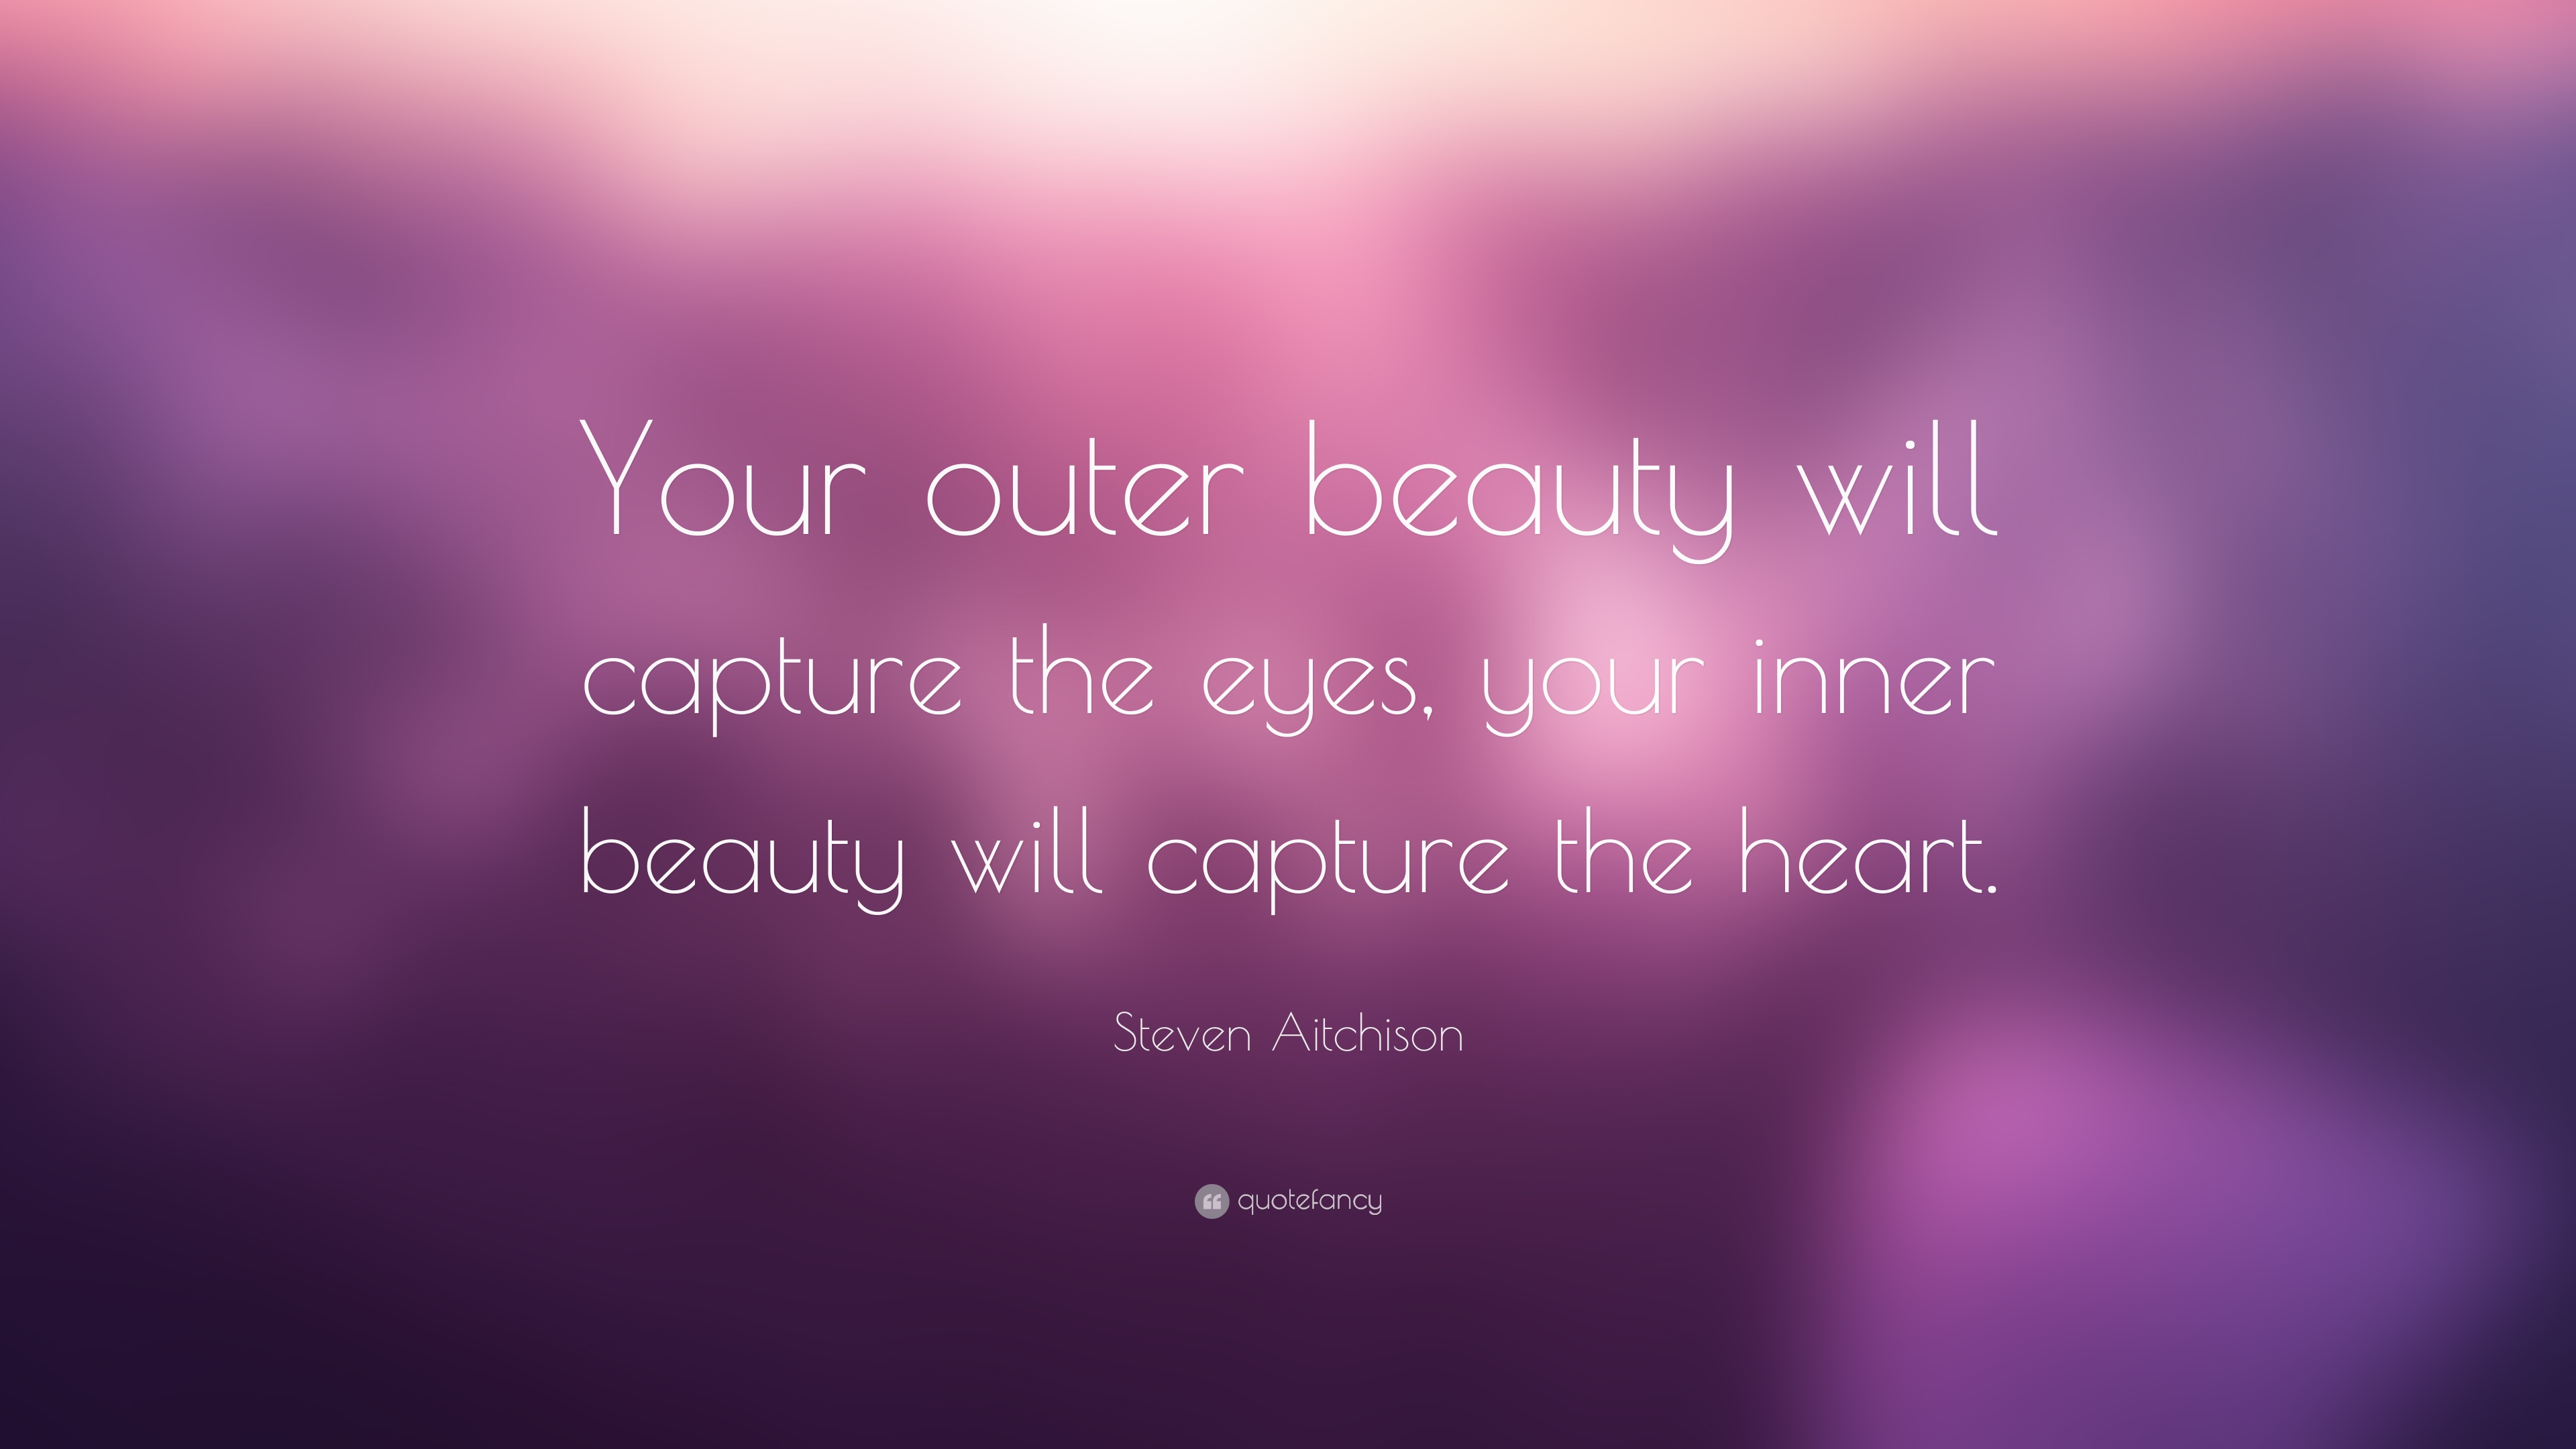 Quotes On Beauty Glamorous Beauty Quotes 30 Wallpapers  Quotefancy